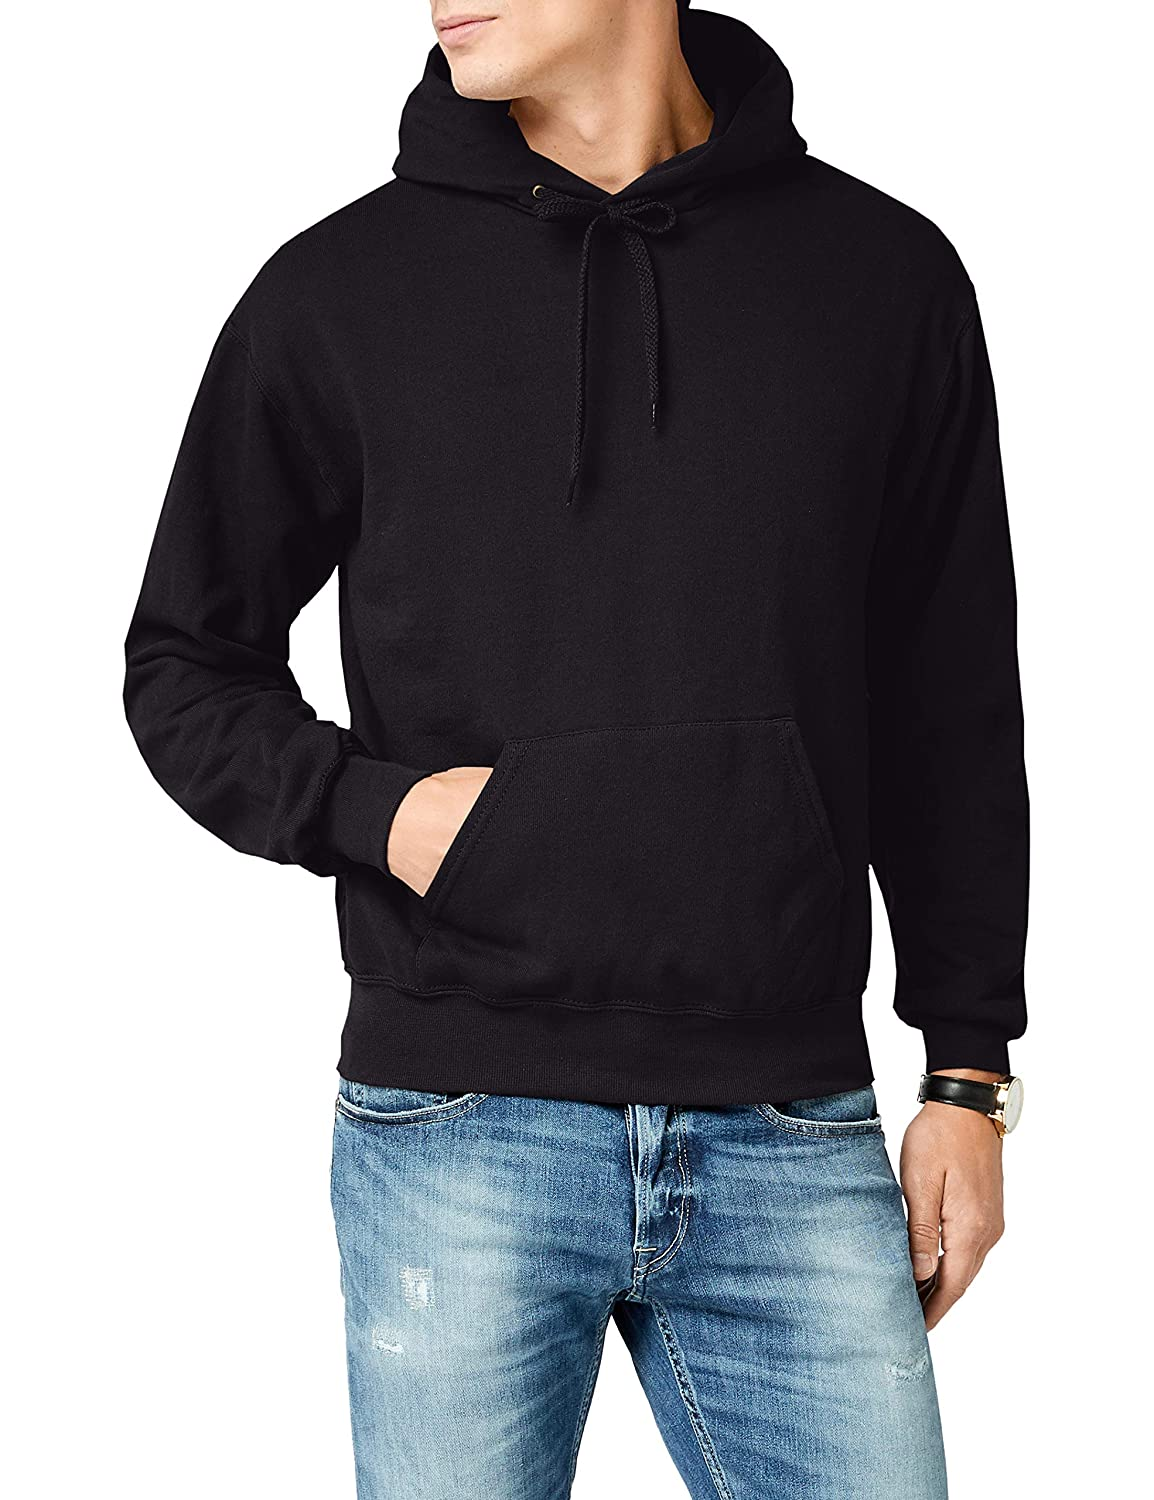 TALLA XXL. Fruit of the Loom 62-208-0, Sudadera con Capucha Para Hombre